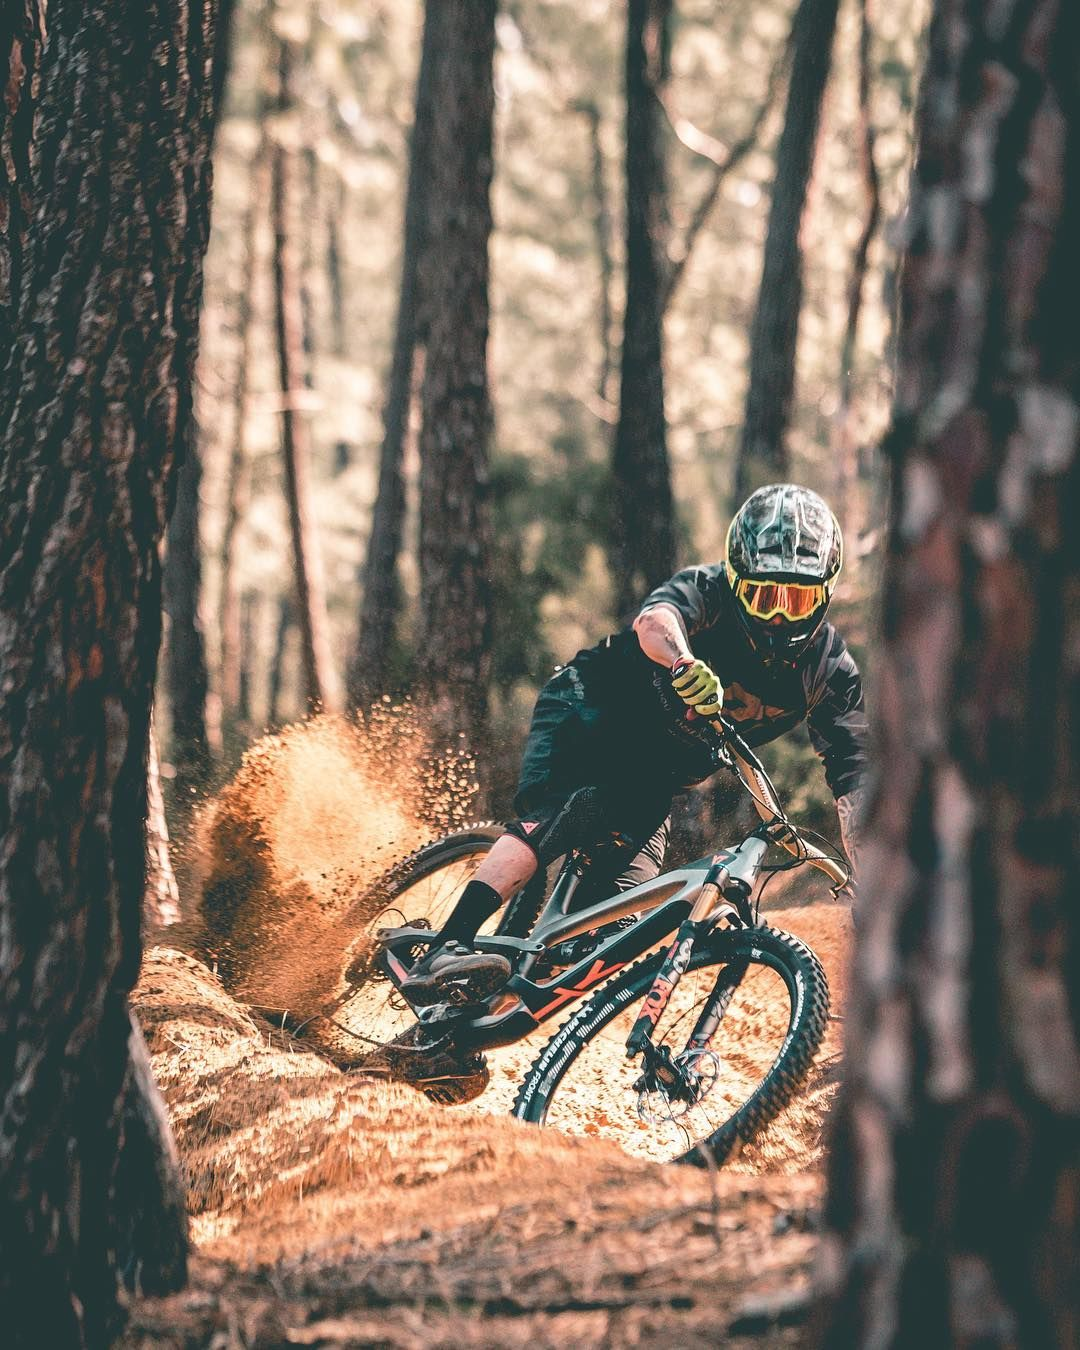 336 Likes 0 Comments Yt Industries Yt Industries On